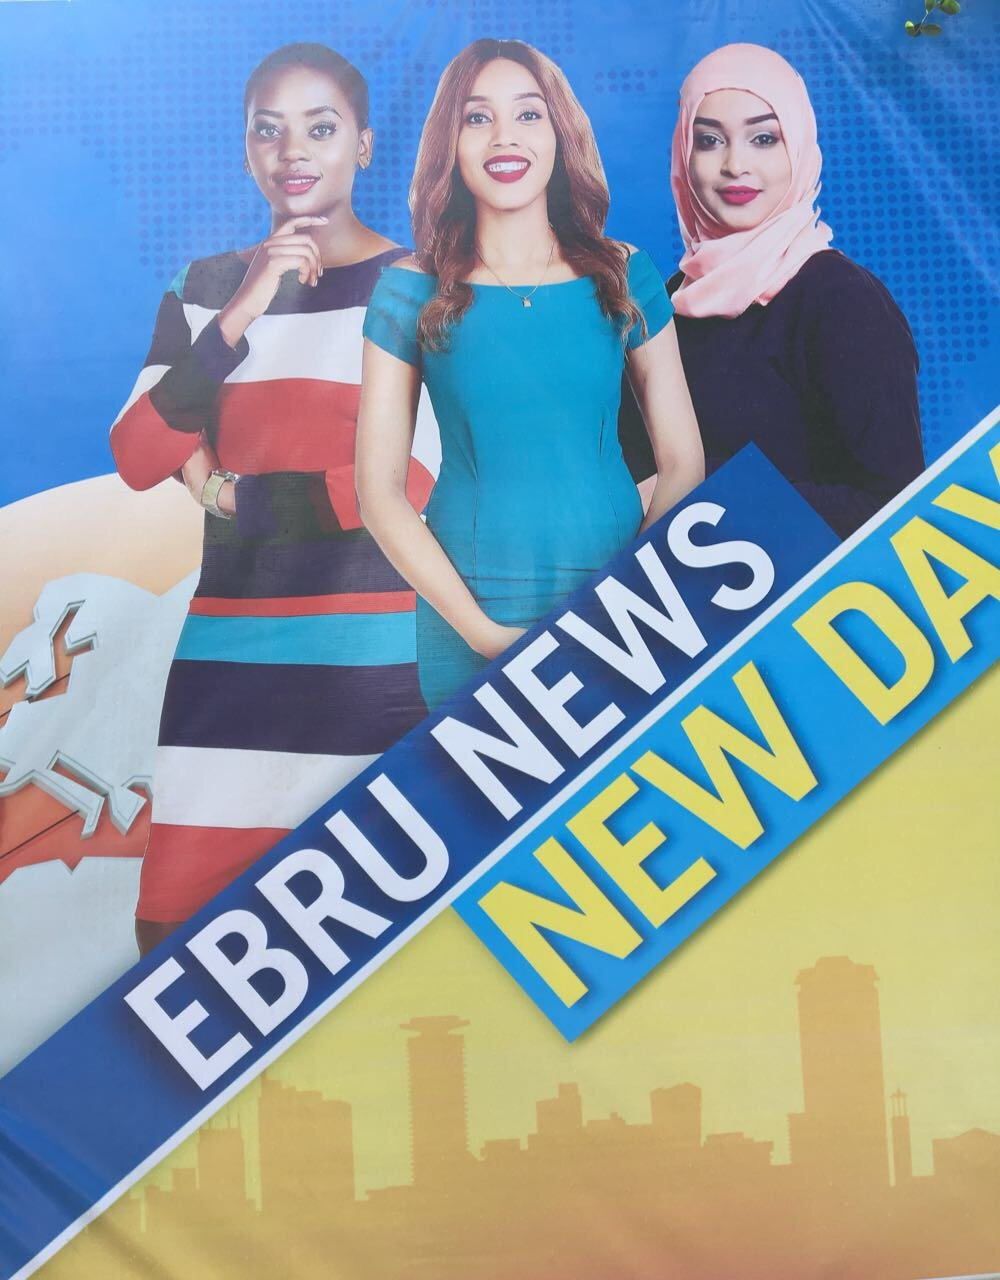 Ebru TV's billboard